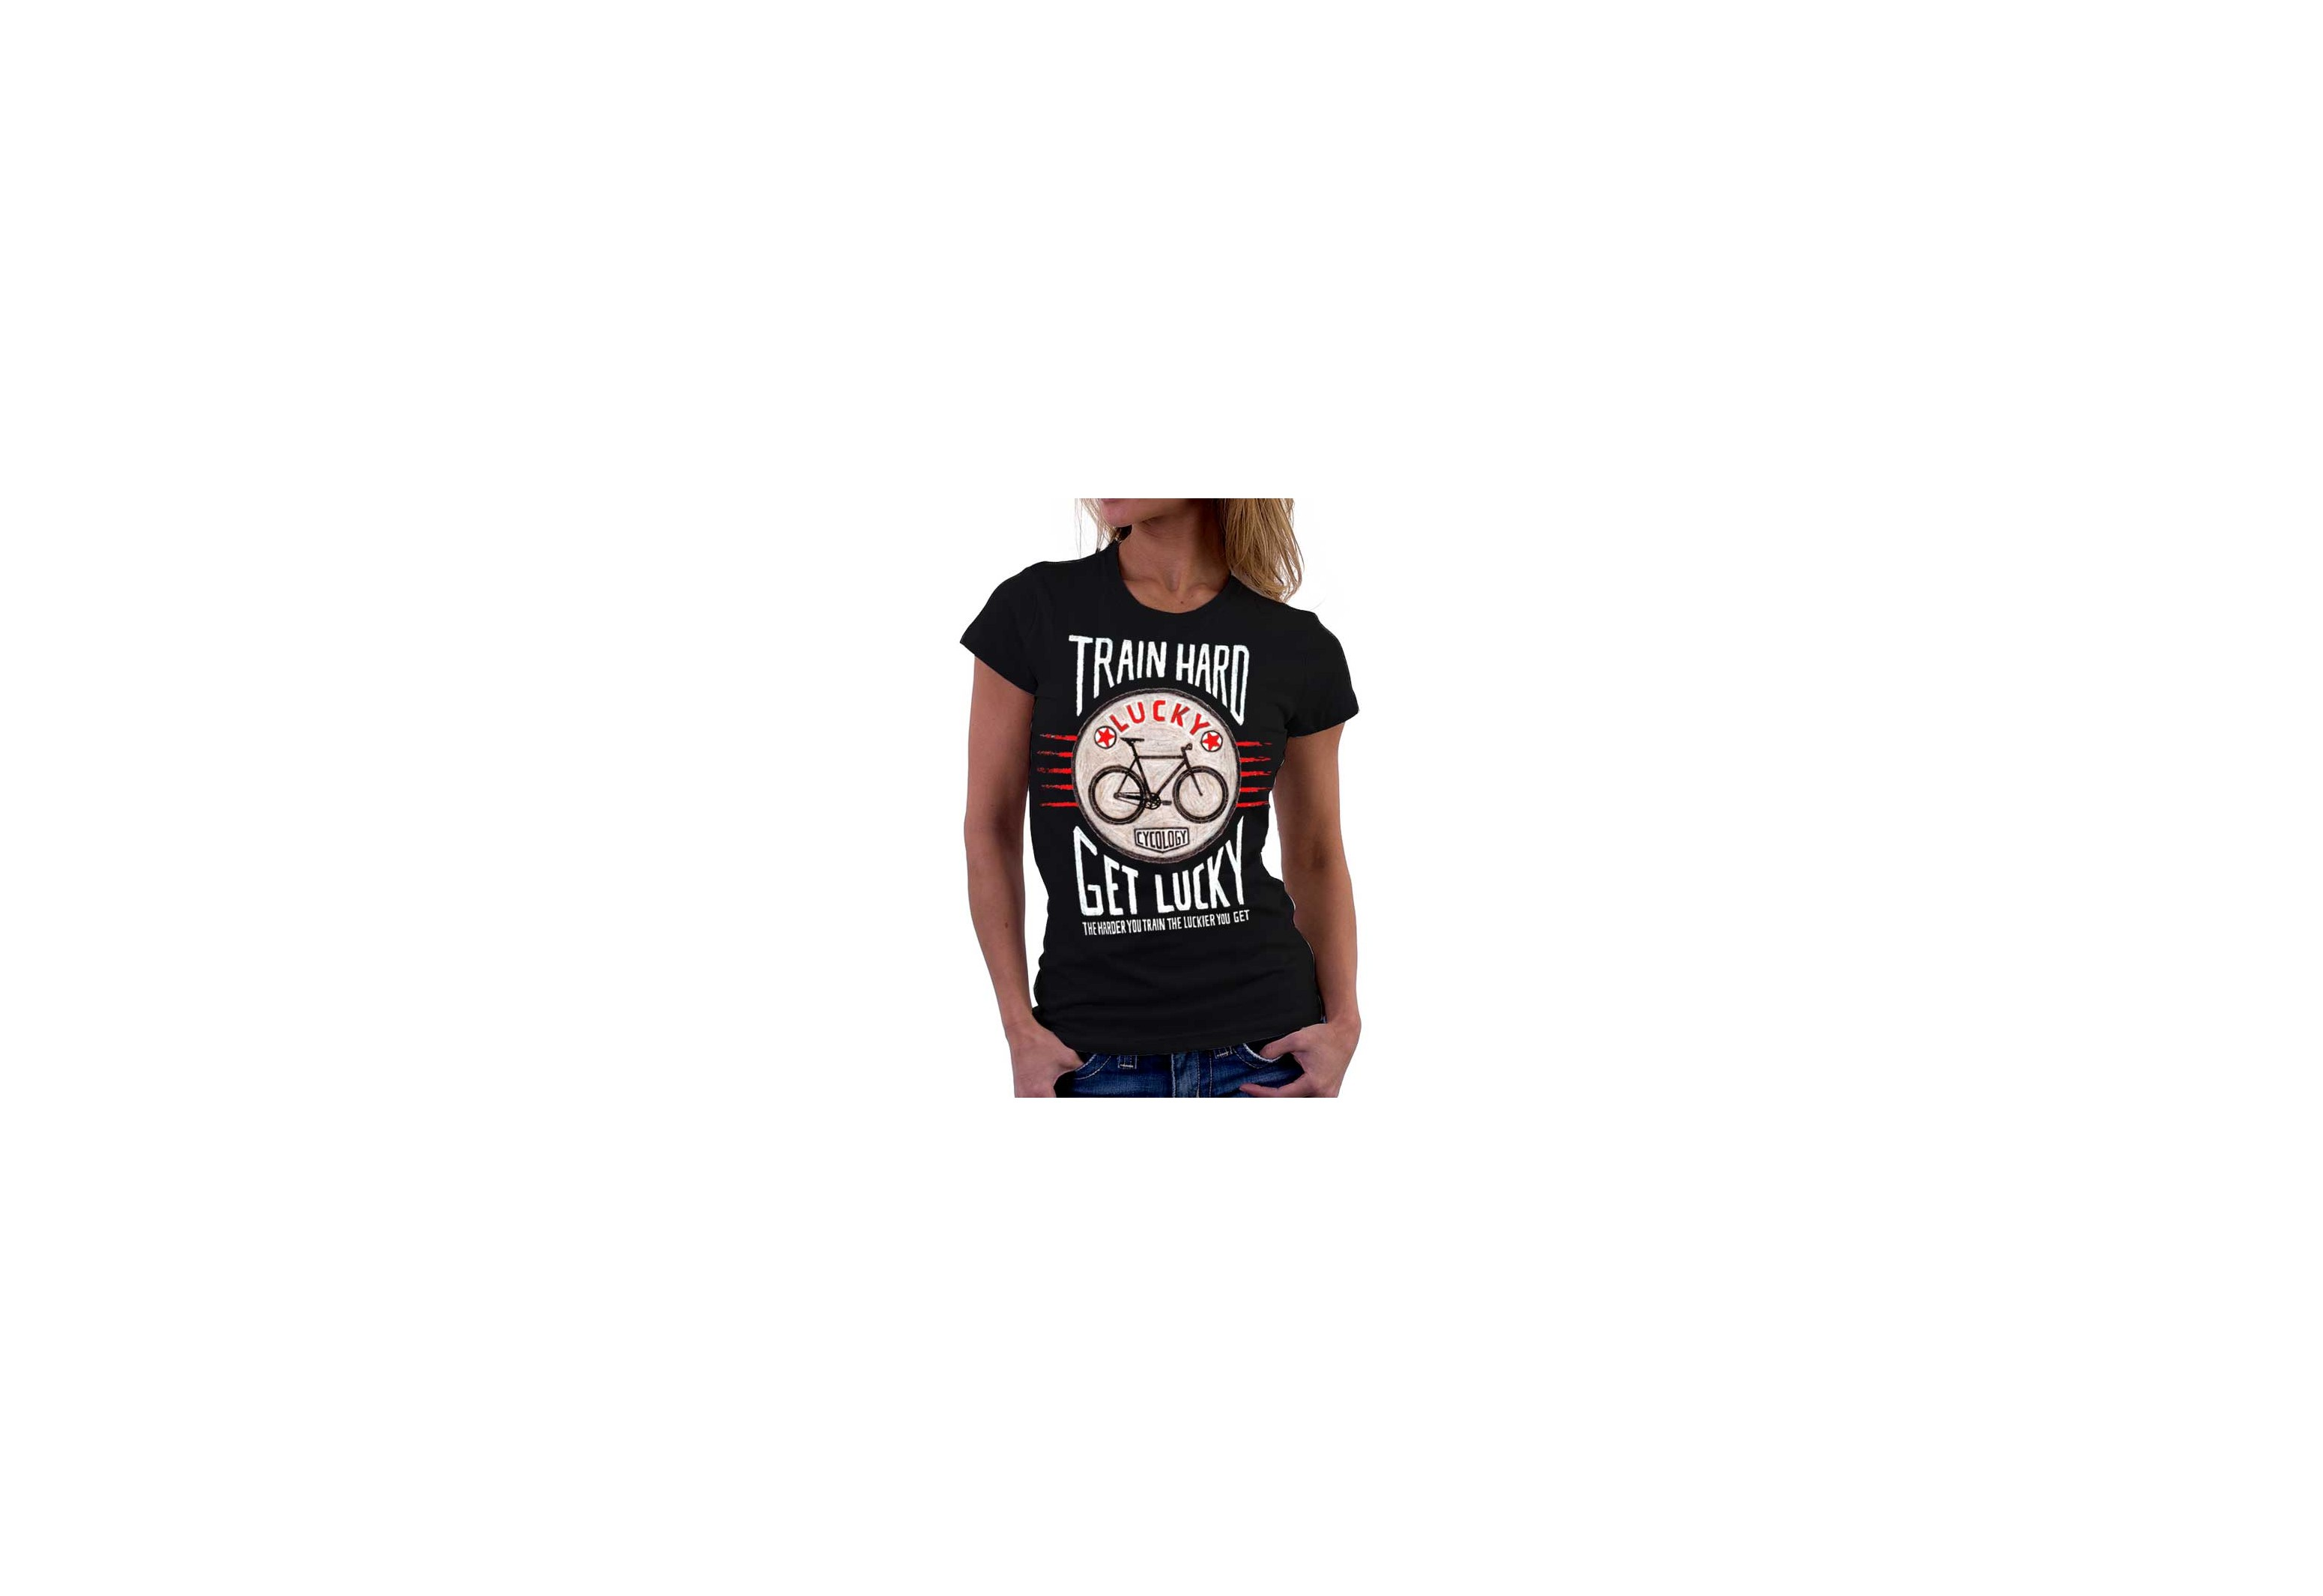 Tee-shirt TRAIN HARD GET LUCKY - femme - gris